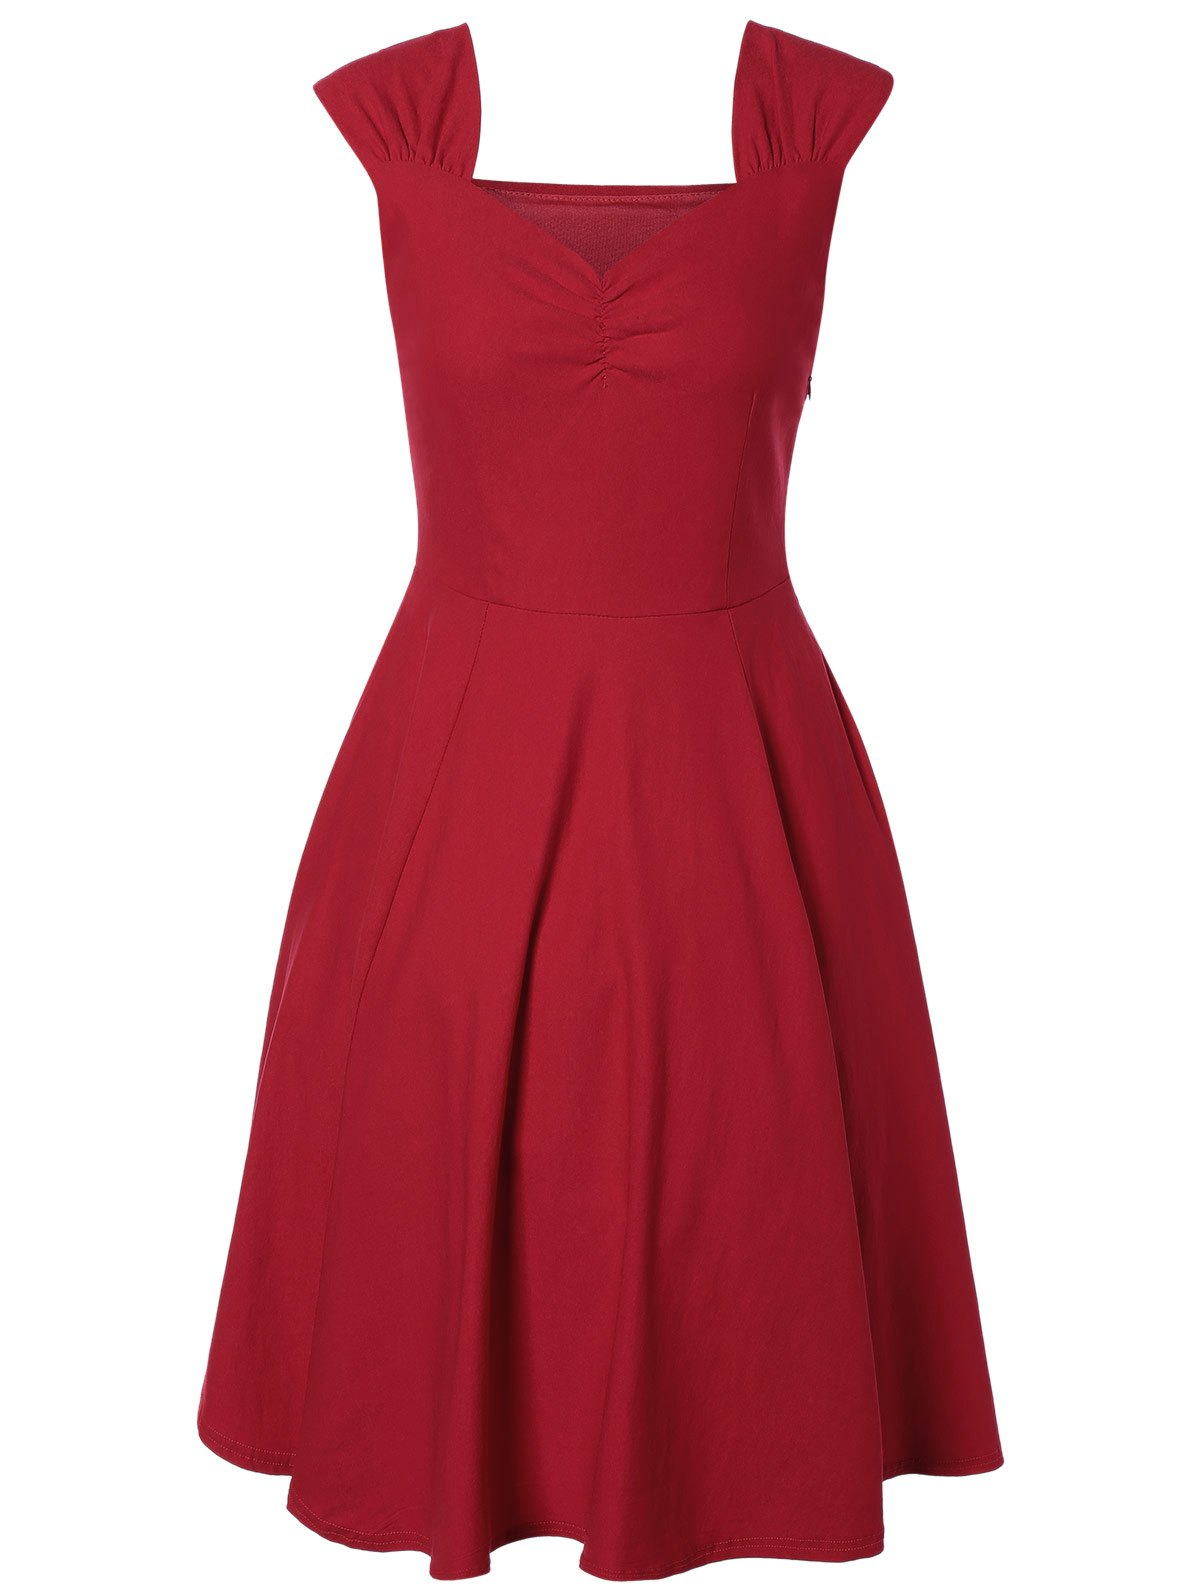 Sweetheart Neck Pin Up Dress - RED 2XL